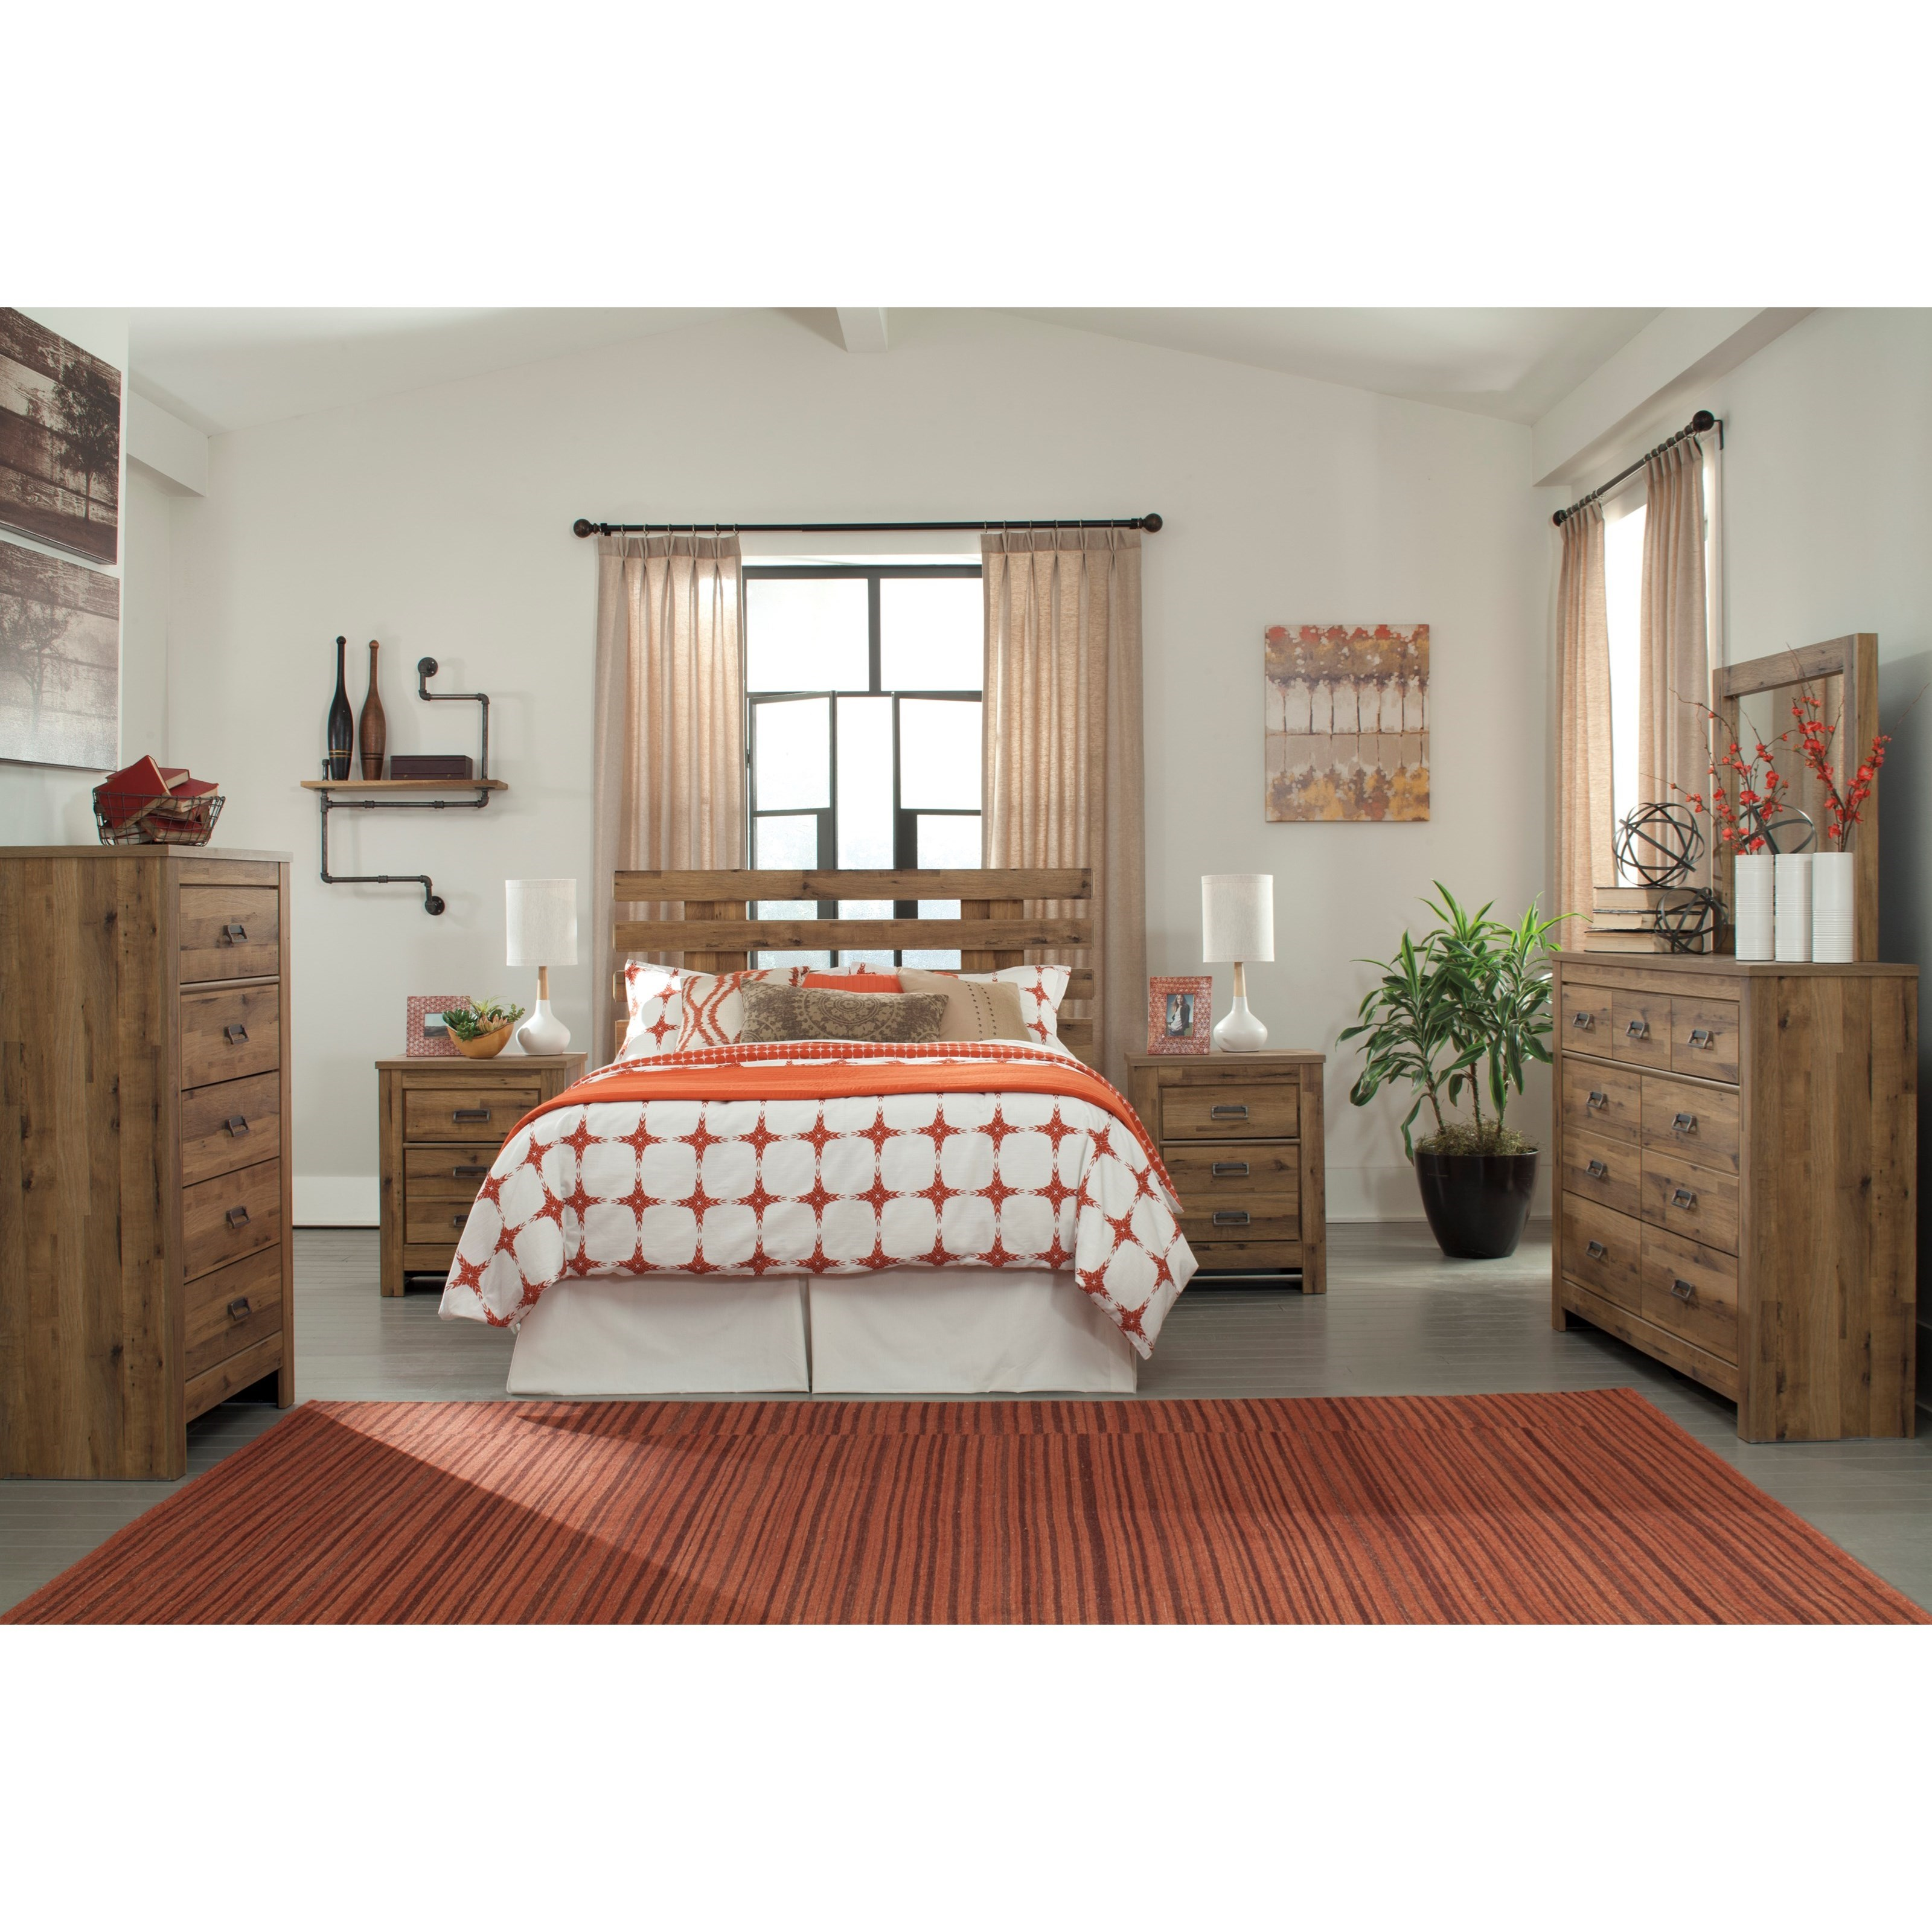 Signature Design by Ashley Cinrey Queen Bedroom Group - Item Number: B369 Q Bedroom Group 1